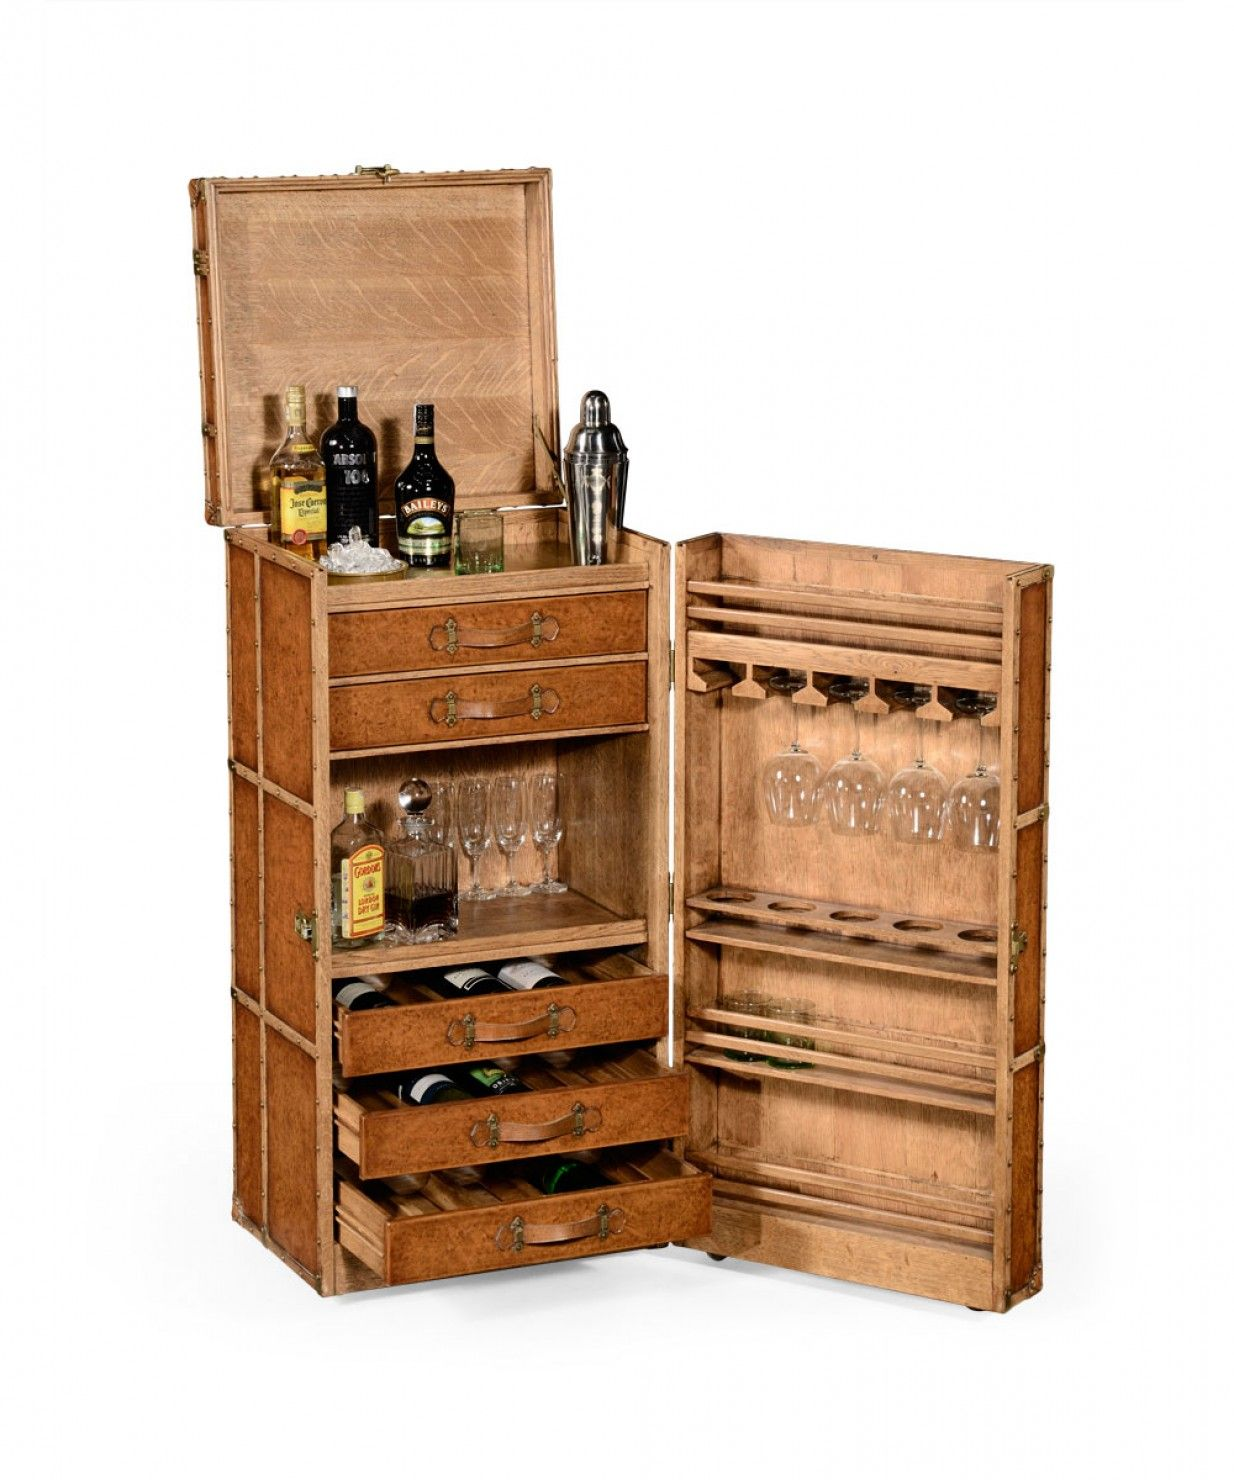 Steamer Trunk Furniture Furniture Beverage Storage Travel Trunk Style Wine And Cocktail